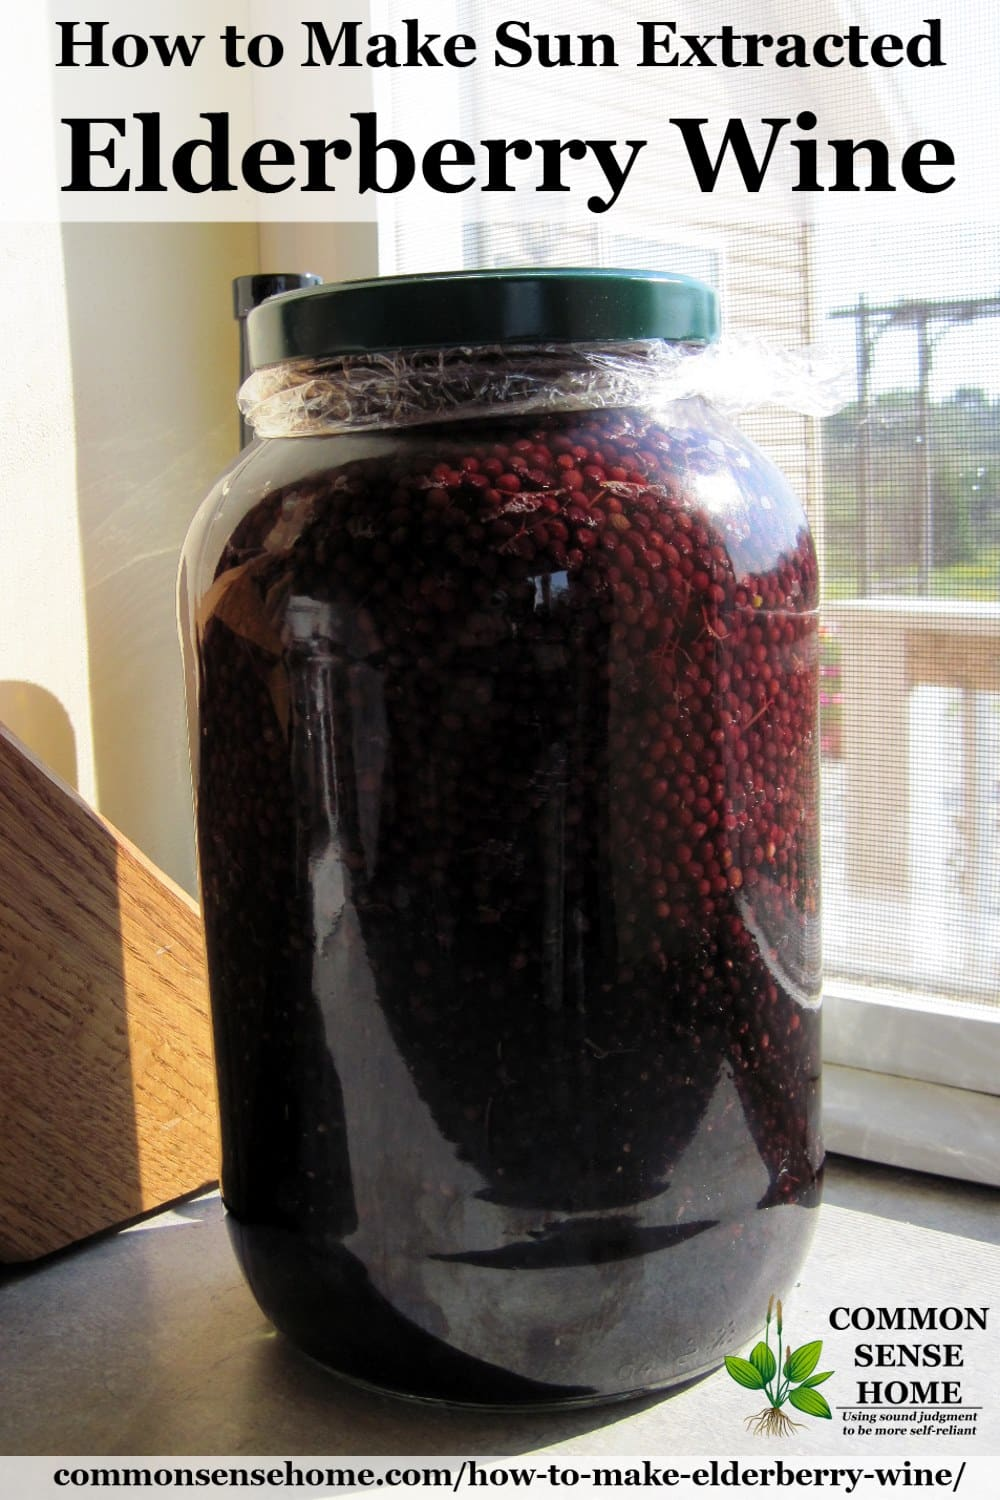 sun extracted elderberry wine